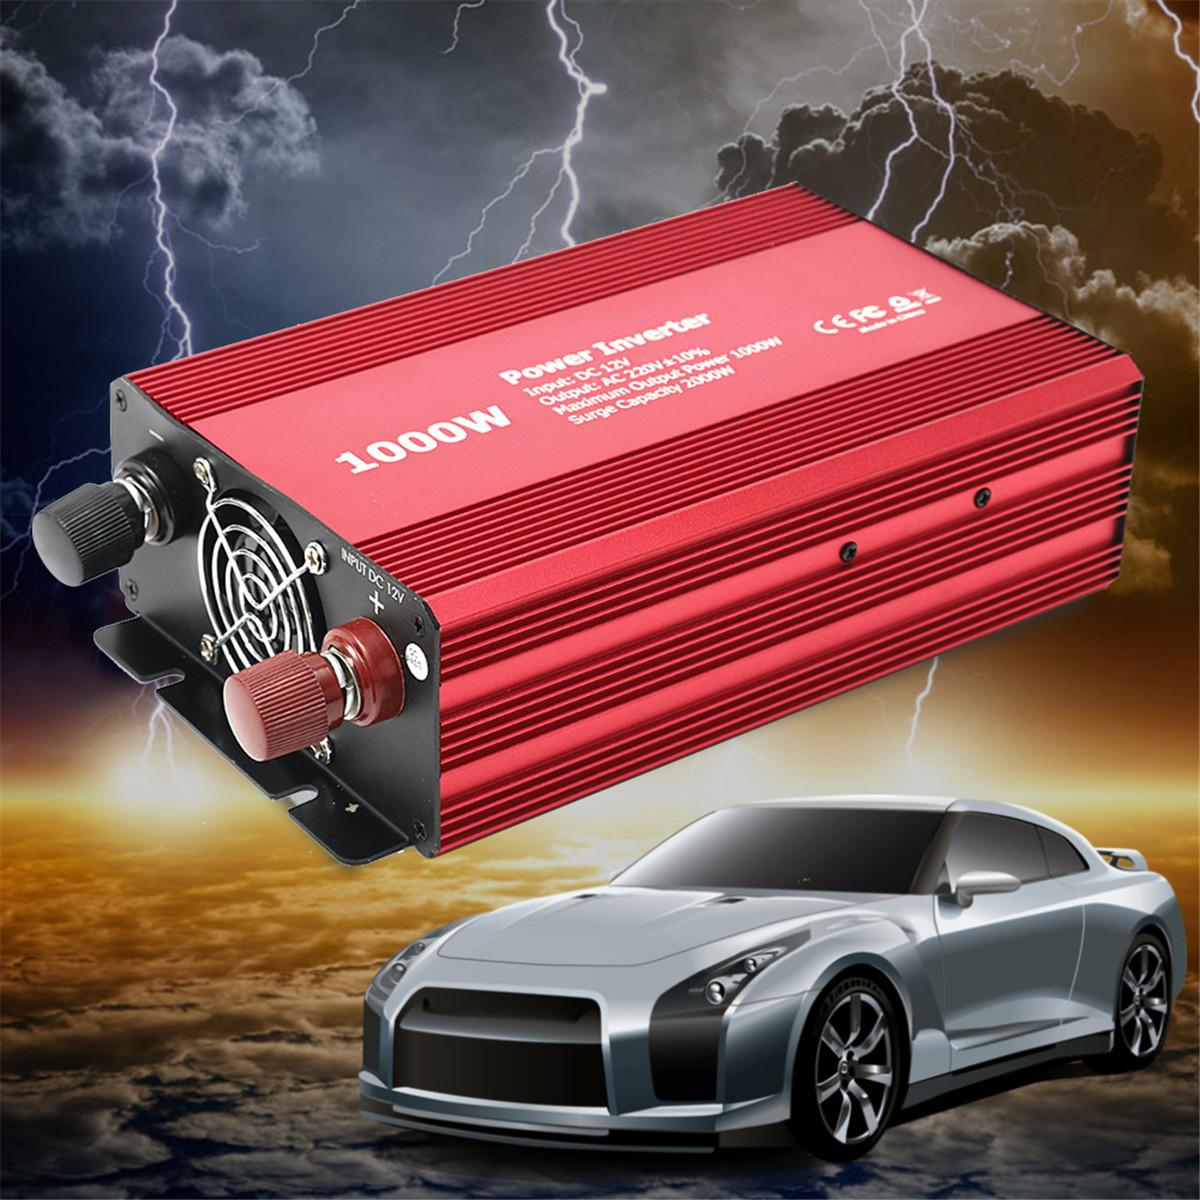 1000W/2000W Peak Dual Charger Adapter Auto Car Power Inverter DC 12V to AC 220V Charger Supply Voltage Transformer Converter